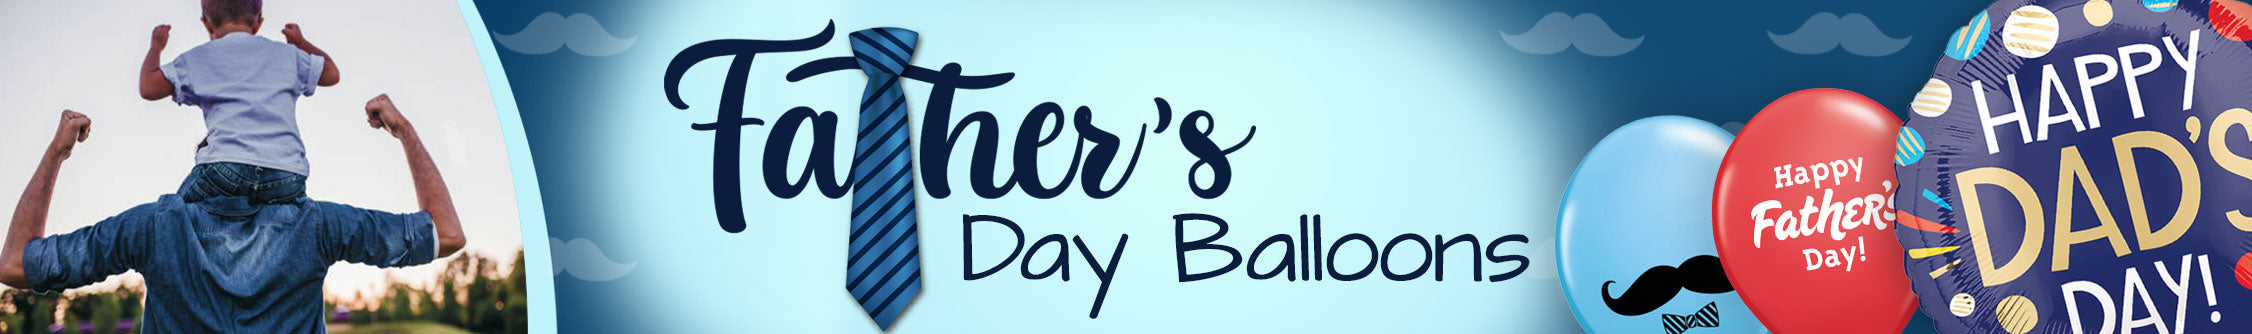 LA Balloons Father's Day Balloons Banner